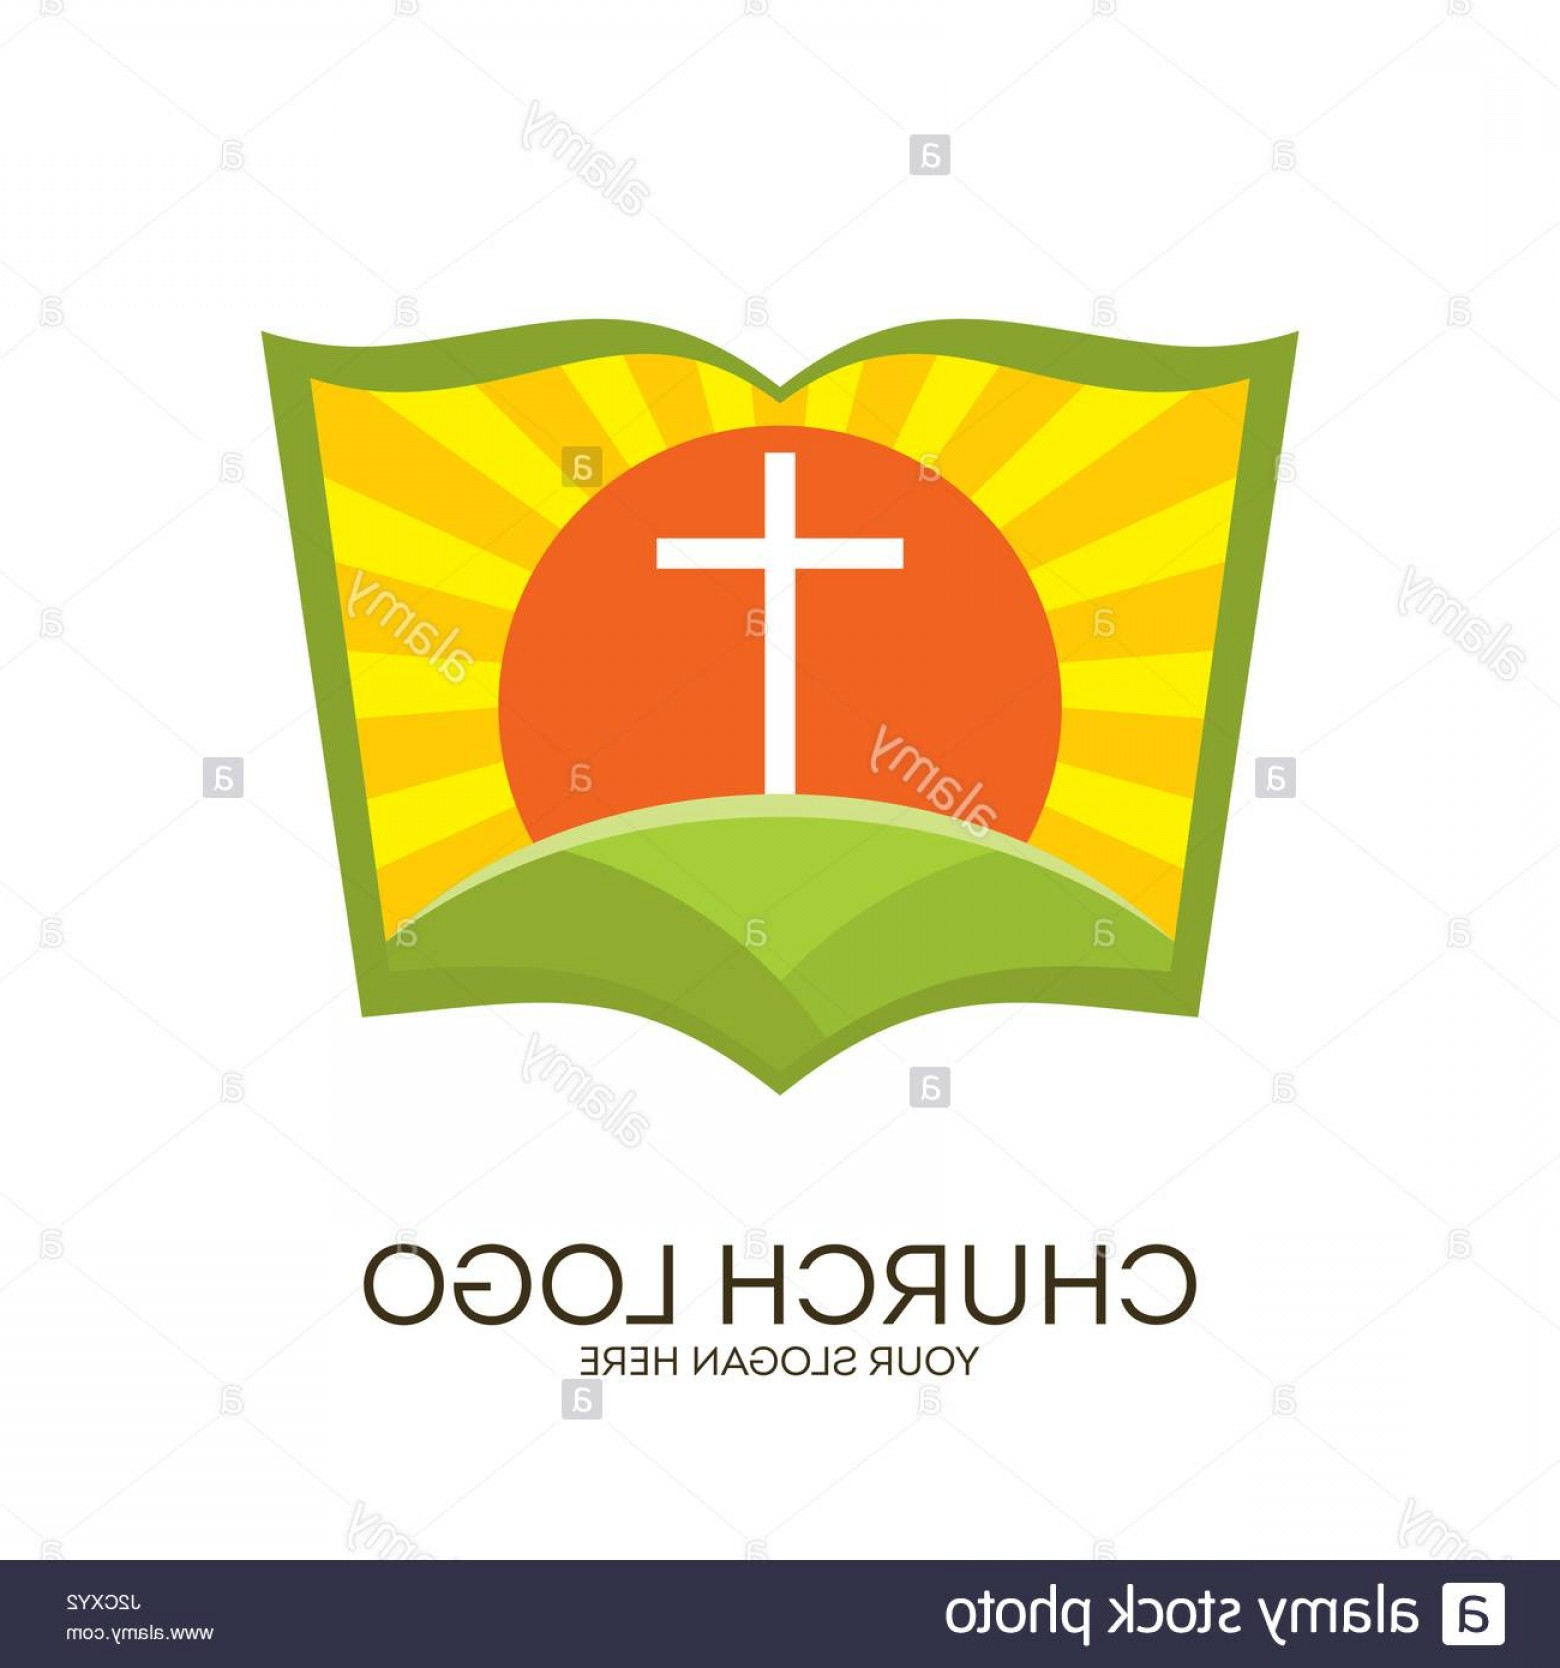 Christian Vector Sun: Stock Photo Church Logo Christian Symbols Bible Sun And Cross